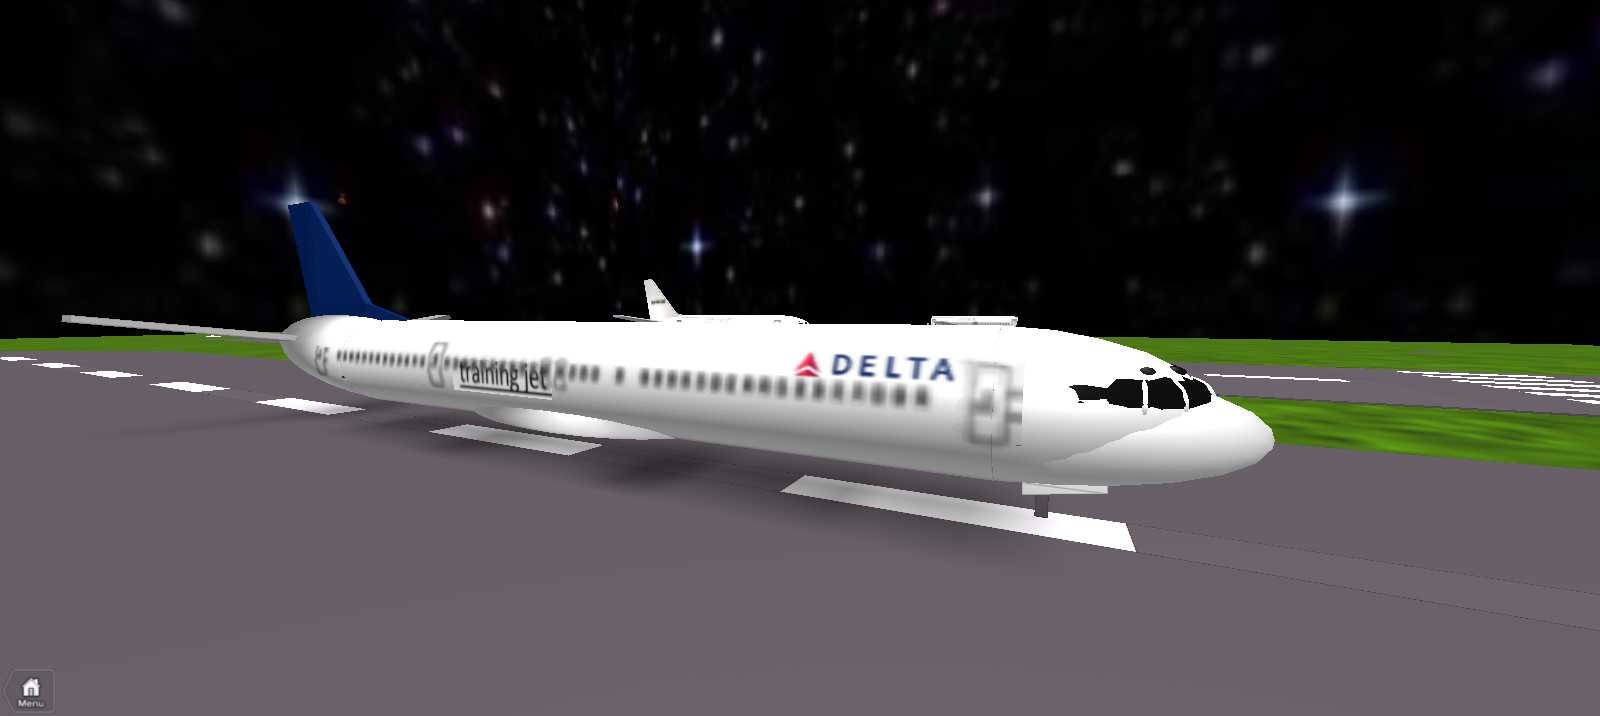 Delta Air Lines Flight 152 The Roblox Airline Industry Wiki